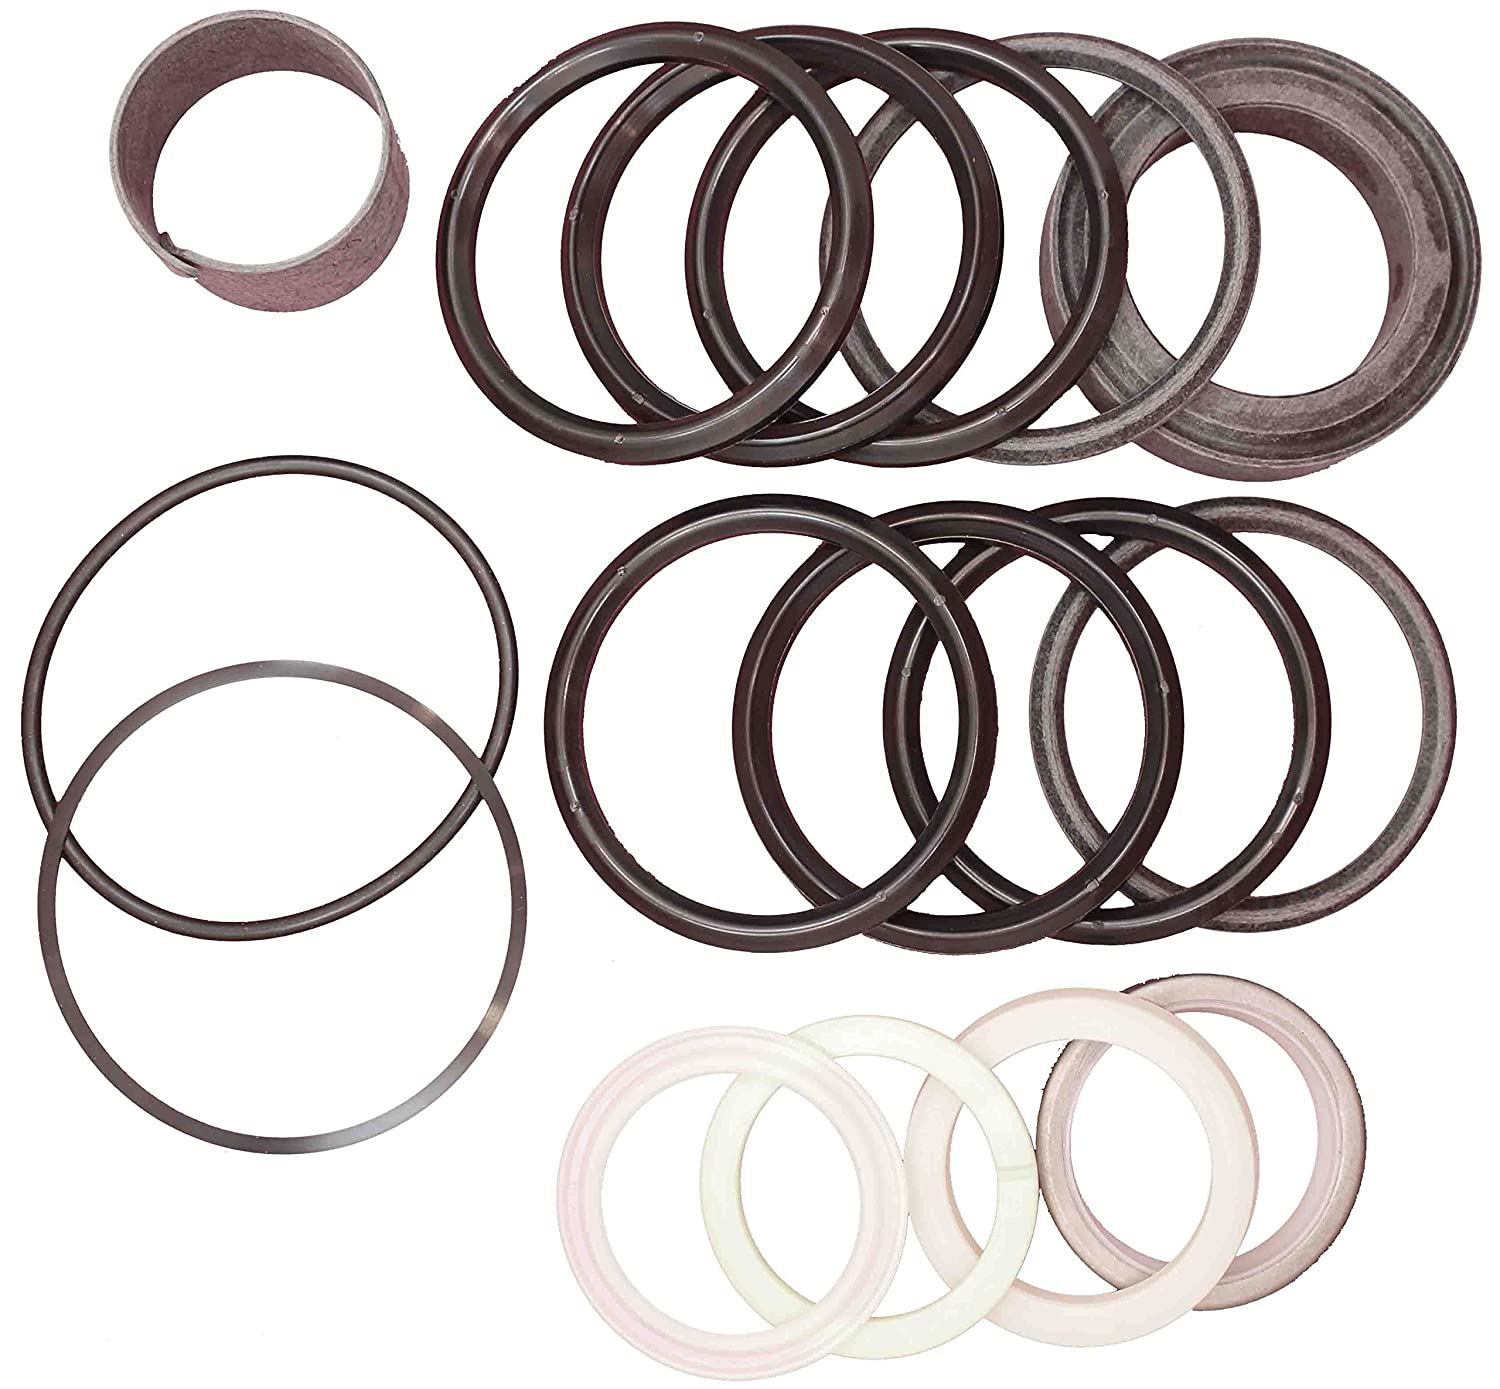 CASE 1543263C1 HYDRAULIC CYLINDER SEAL KIT TORNADO HEAVY EQUIPMENT PARTS